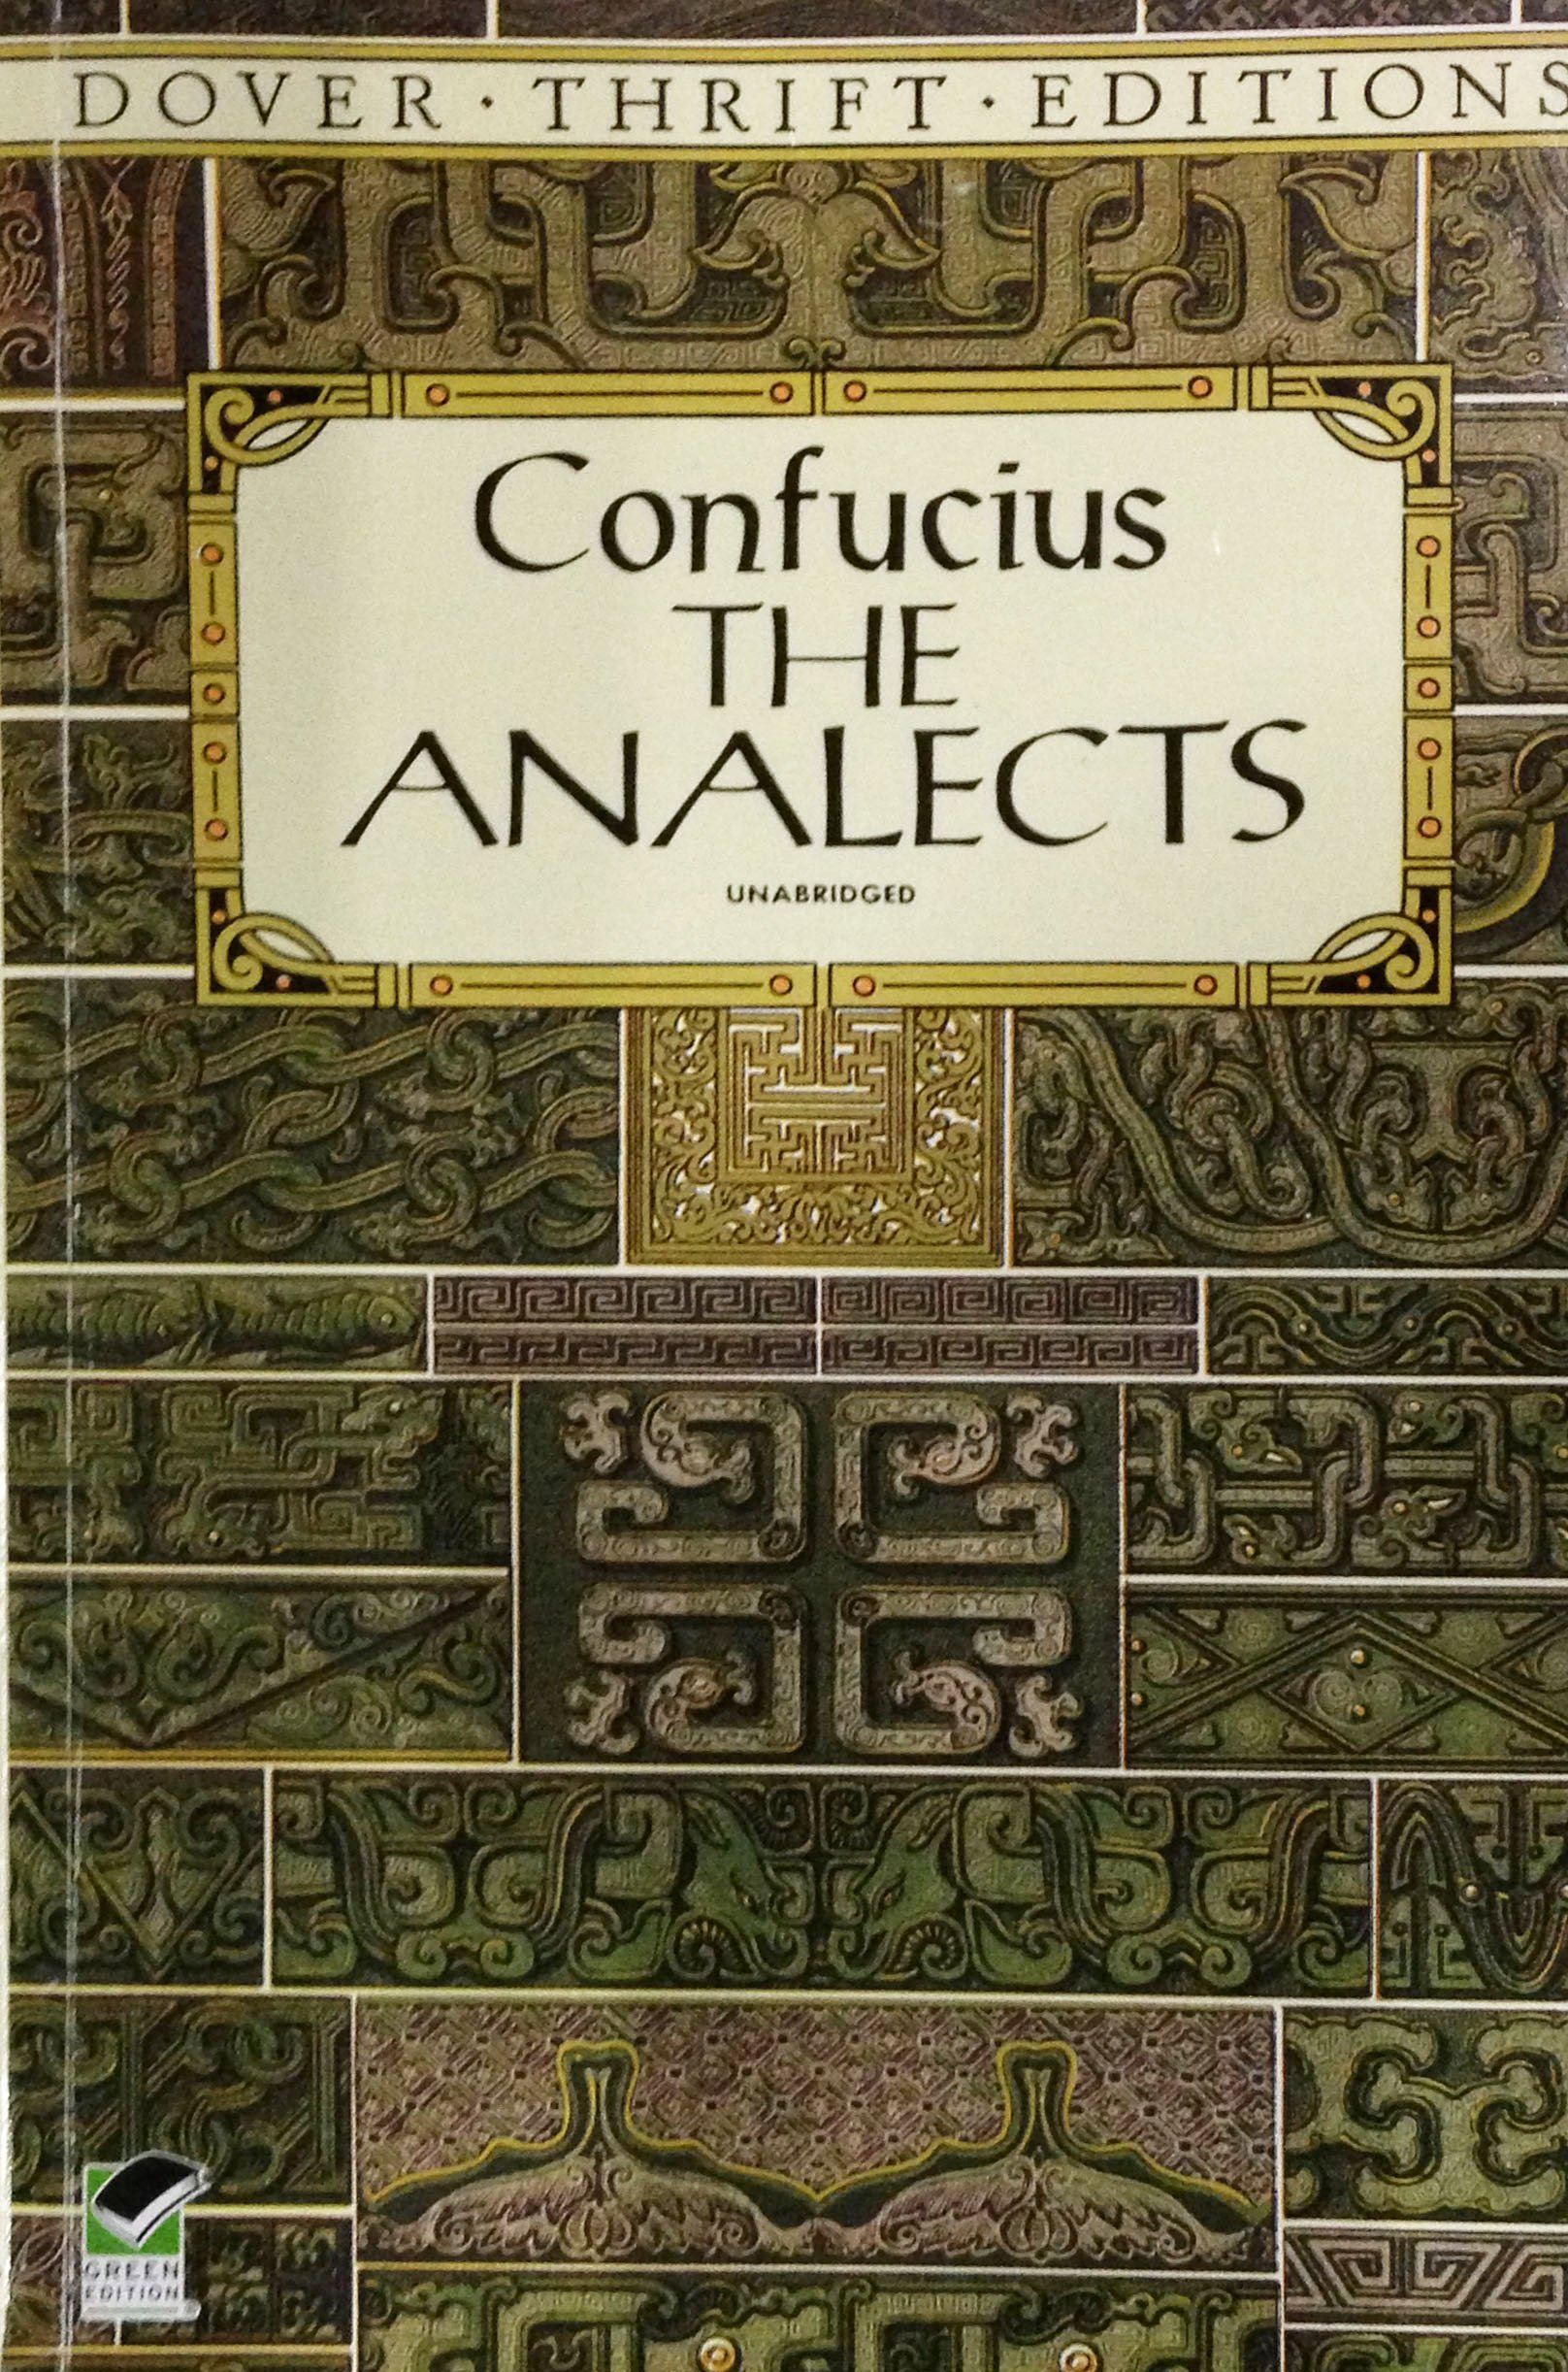 Amazon.com: The Analects (Dover Thrift Editions) (9780486284842):  Confucius, William Edward Soothill: Books